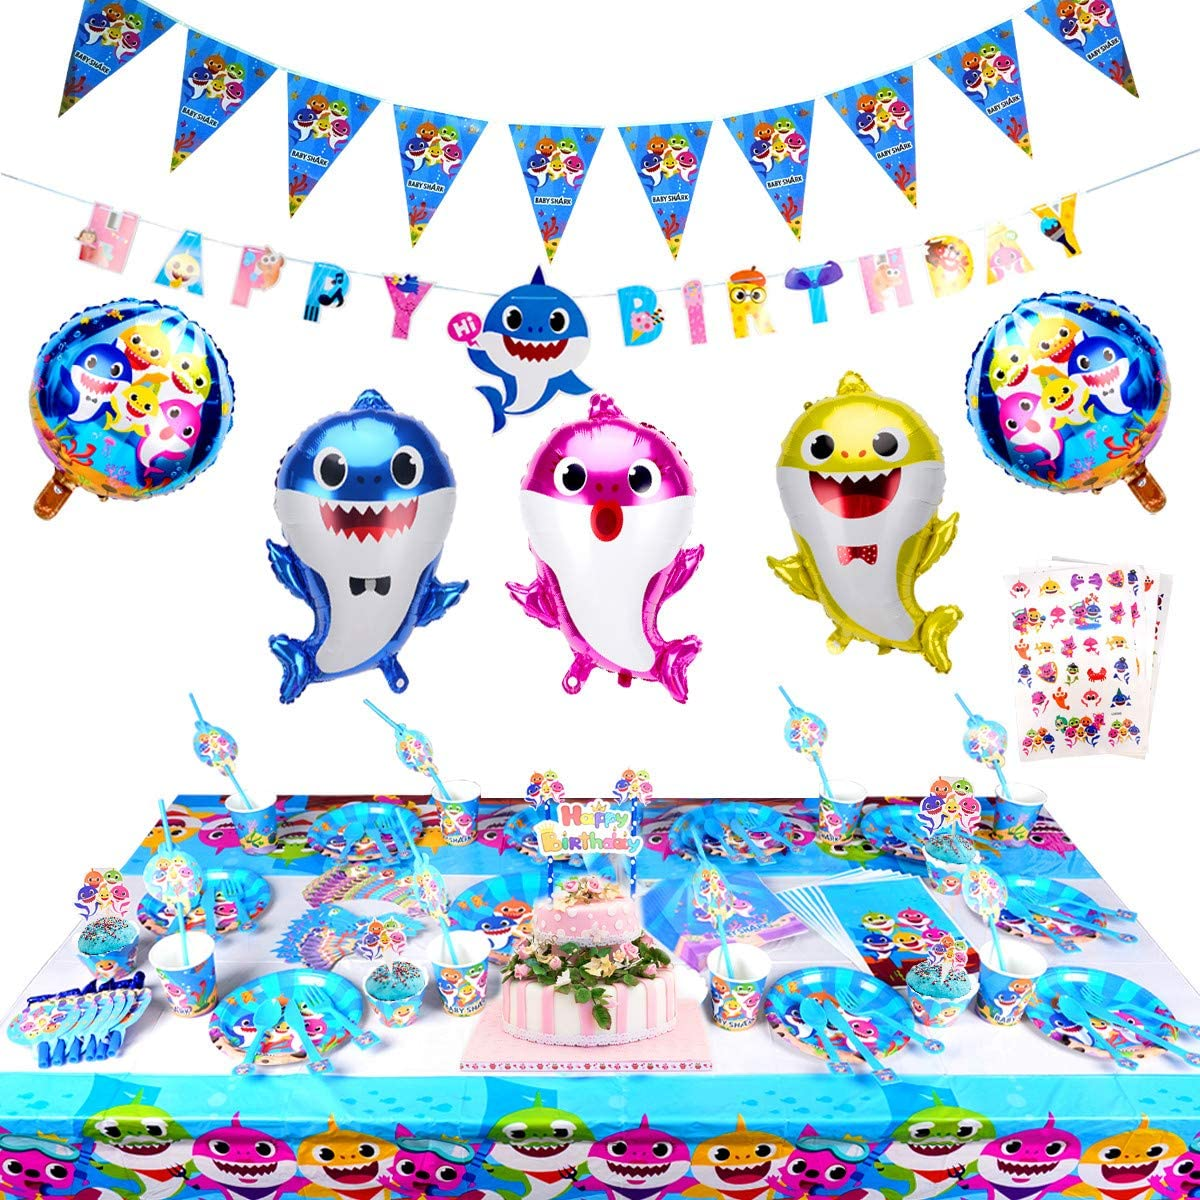 289 Pcs Baby Cute Shark Party Supplies Set,Shark Baby Birthday Decoration-Disposable Tableware Cake Topper Gift Bag Pennant Plates Spoon Cups Napkins Straws Shark Tattoos Kids Carnival Party Supplies